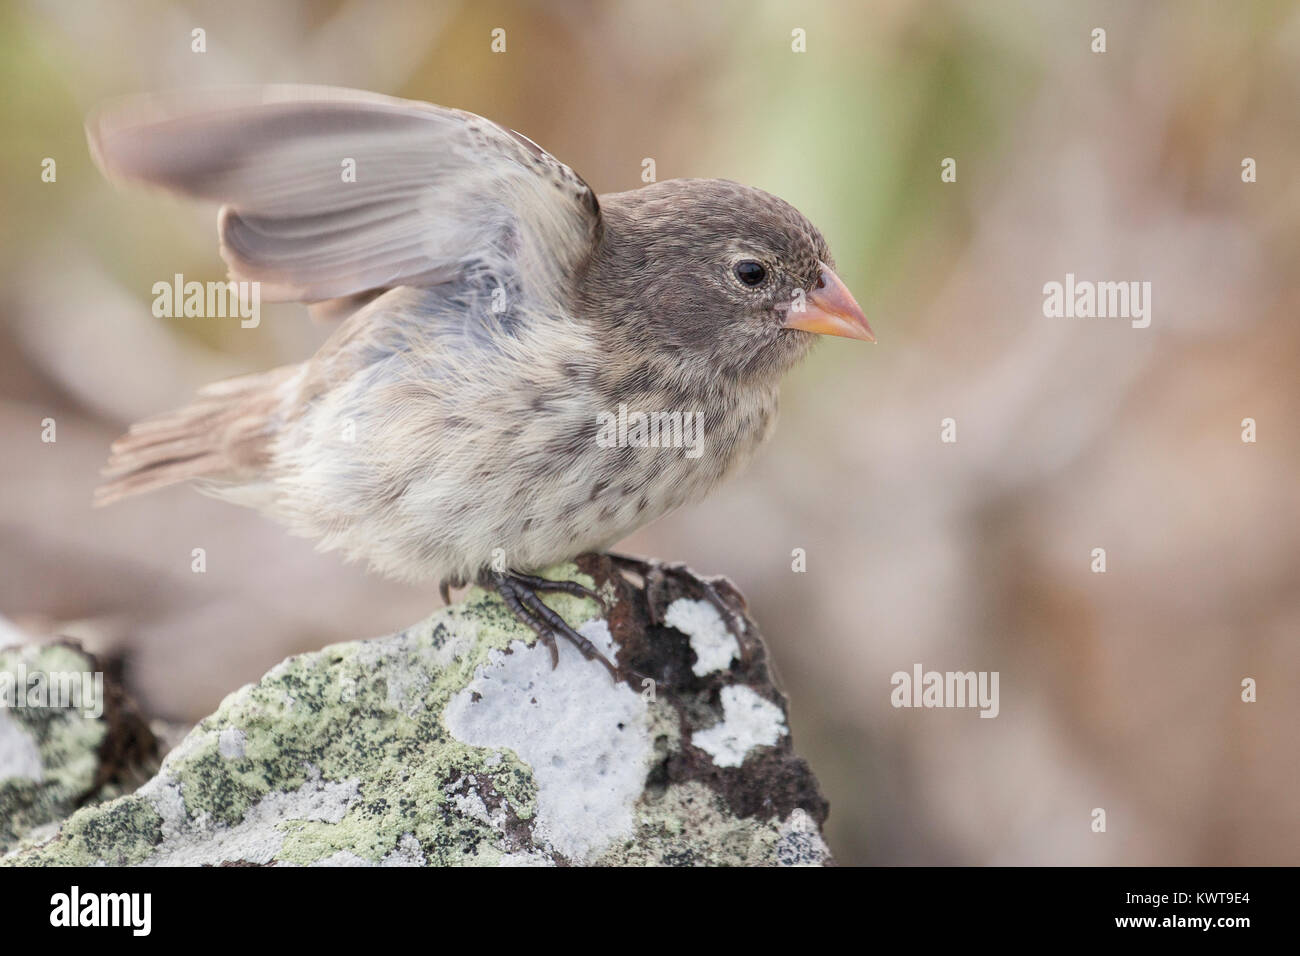 A small ground finch (Geospiza fuliginosa); this is one of the Galapagos finches made famous by the explanation Stock Photo